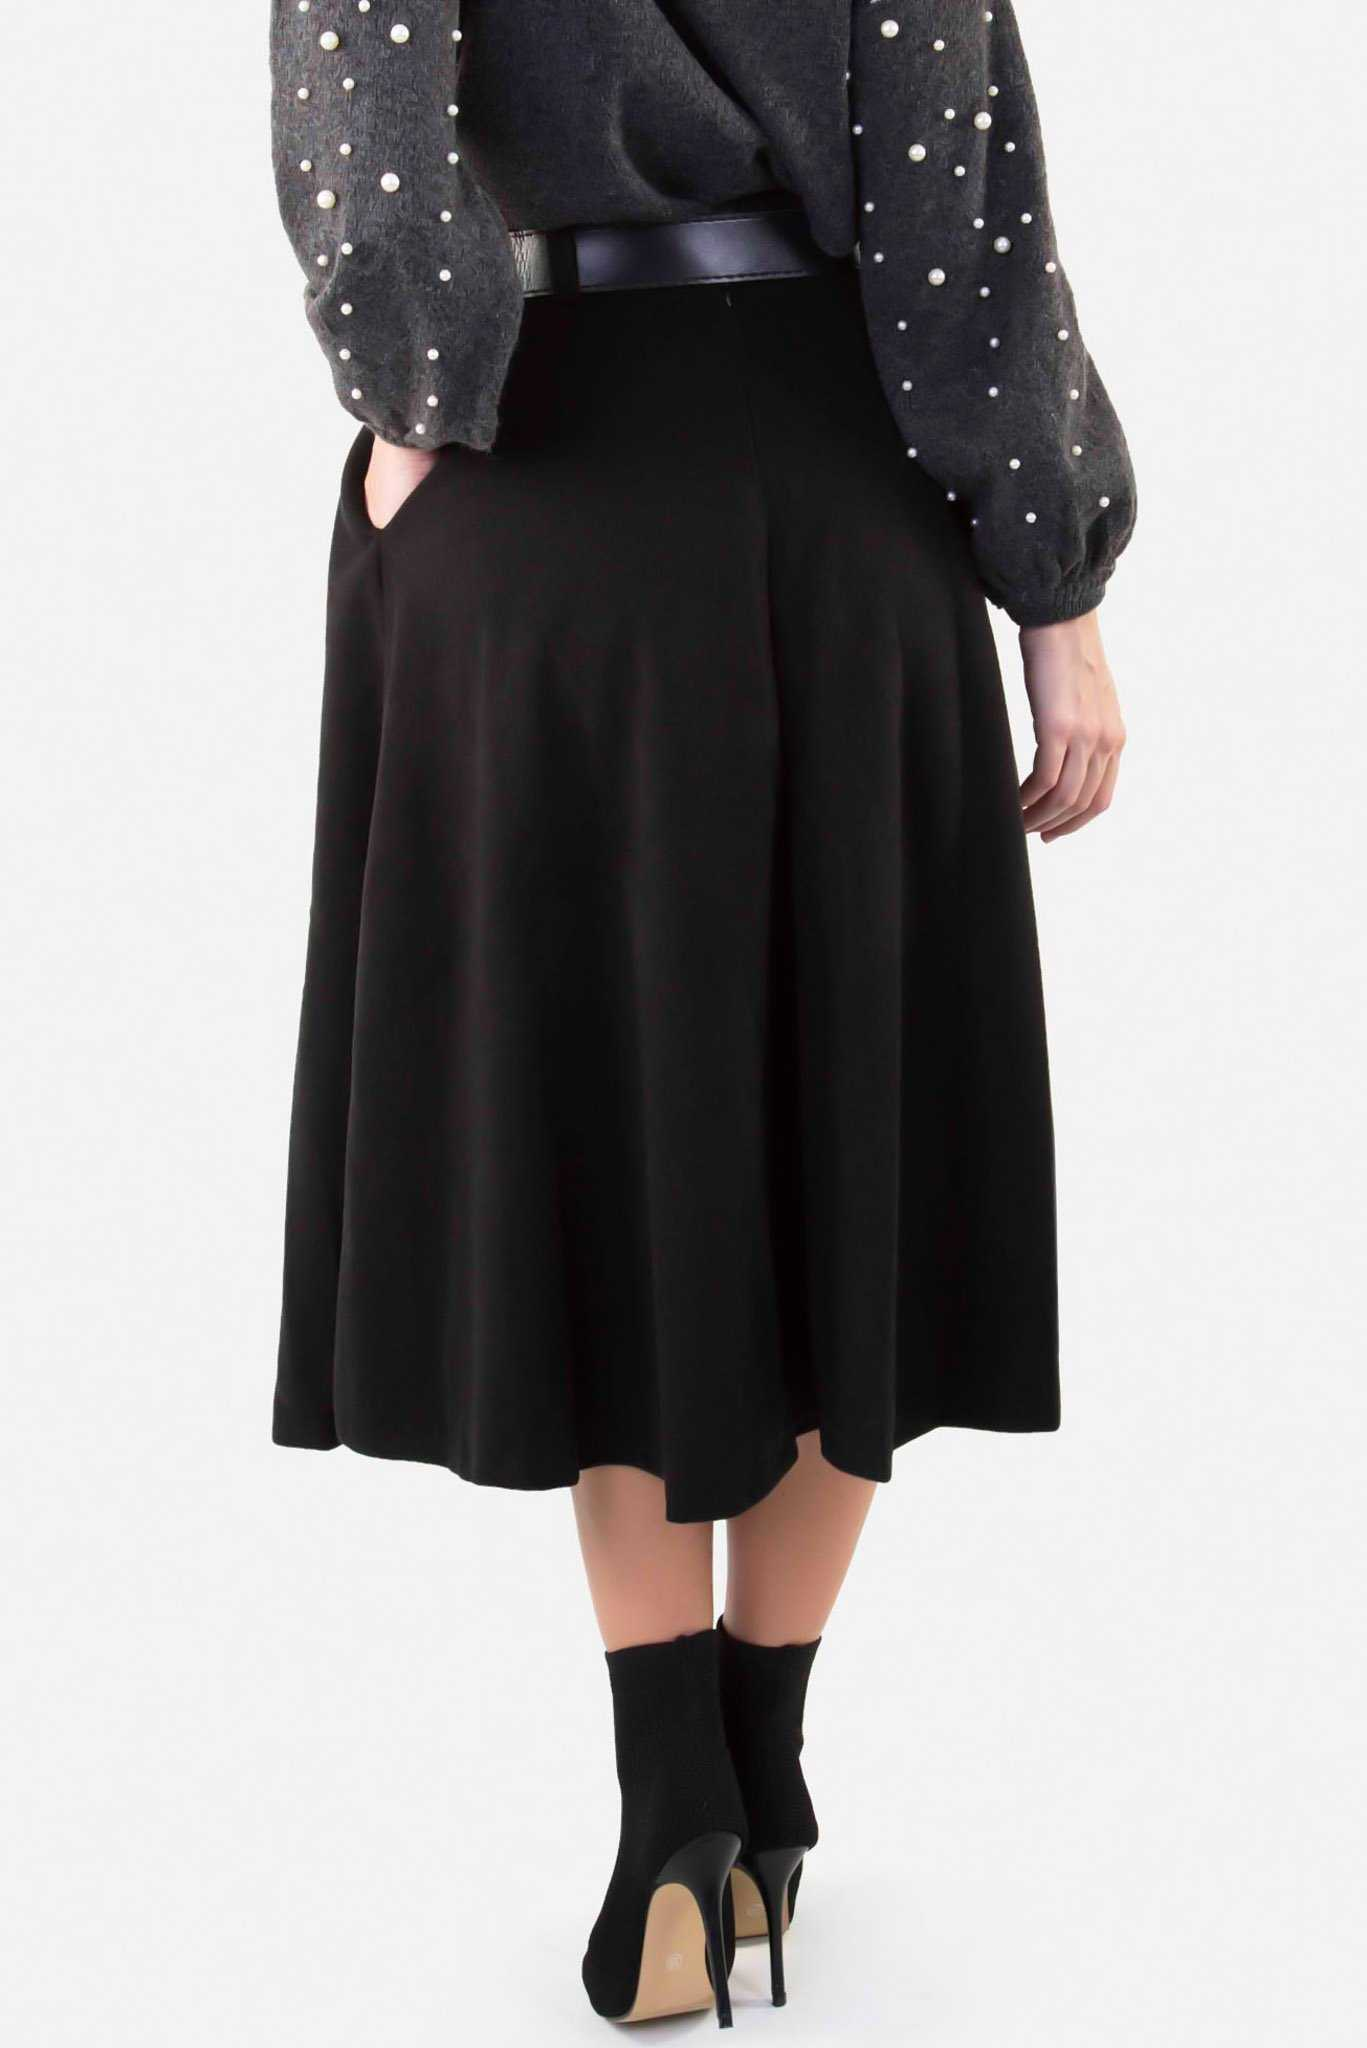 Winter Skirt - Black | Raw Orange